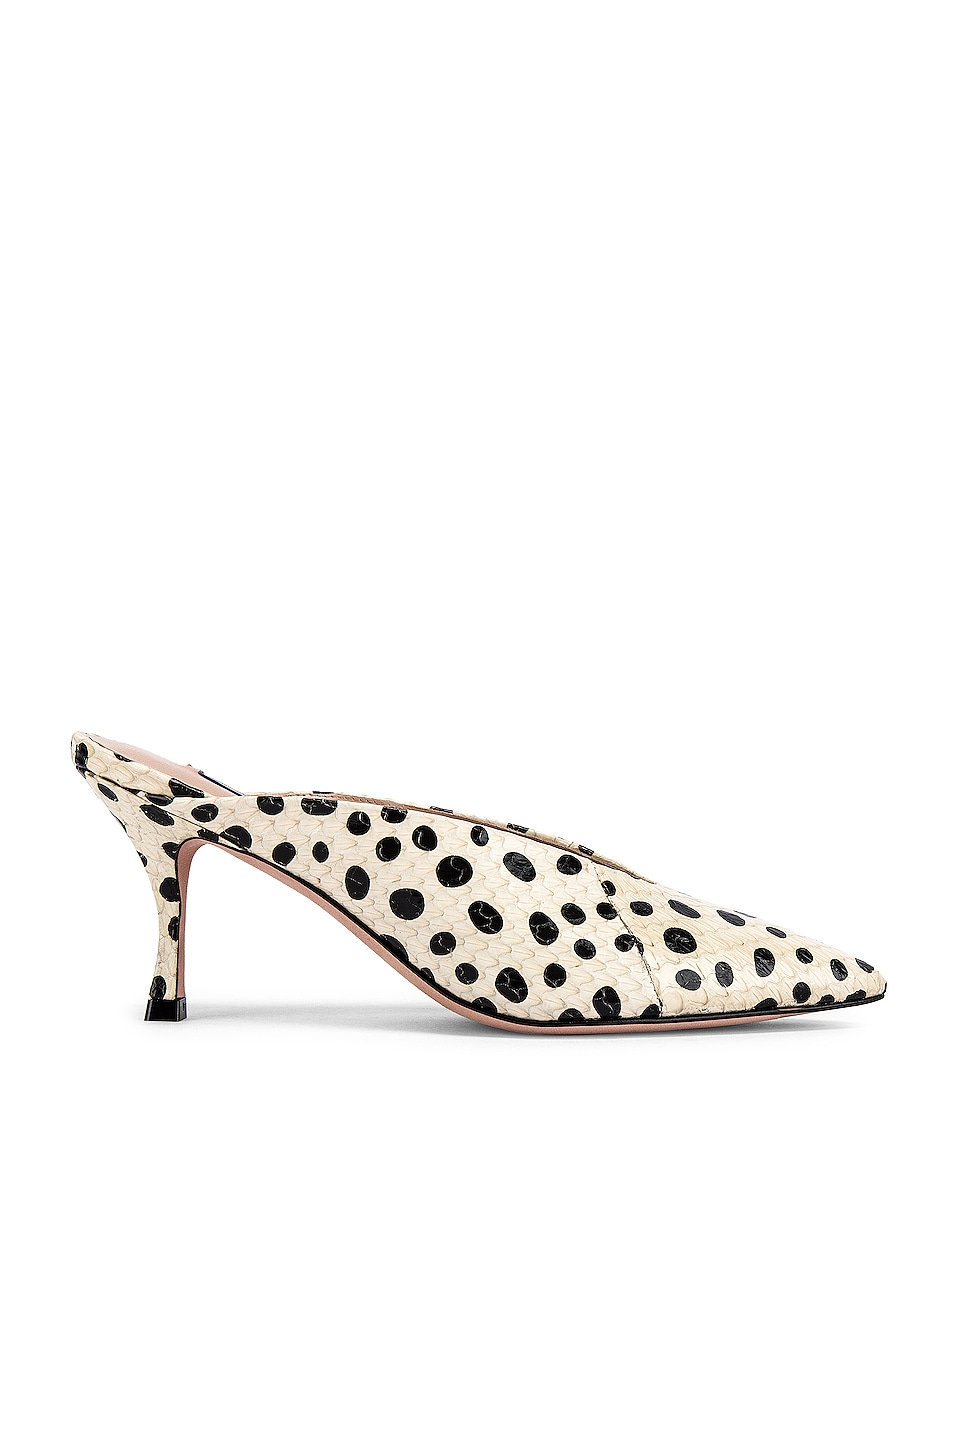 Stuart Weitzman Lulah Mule in Cream Dot